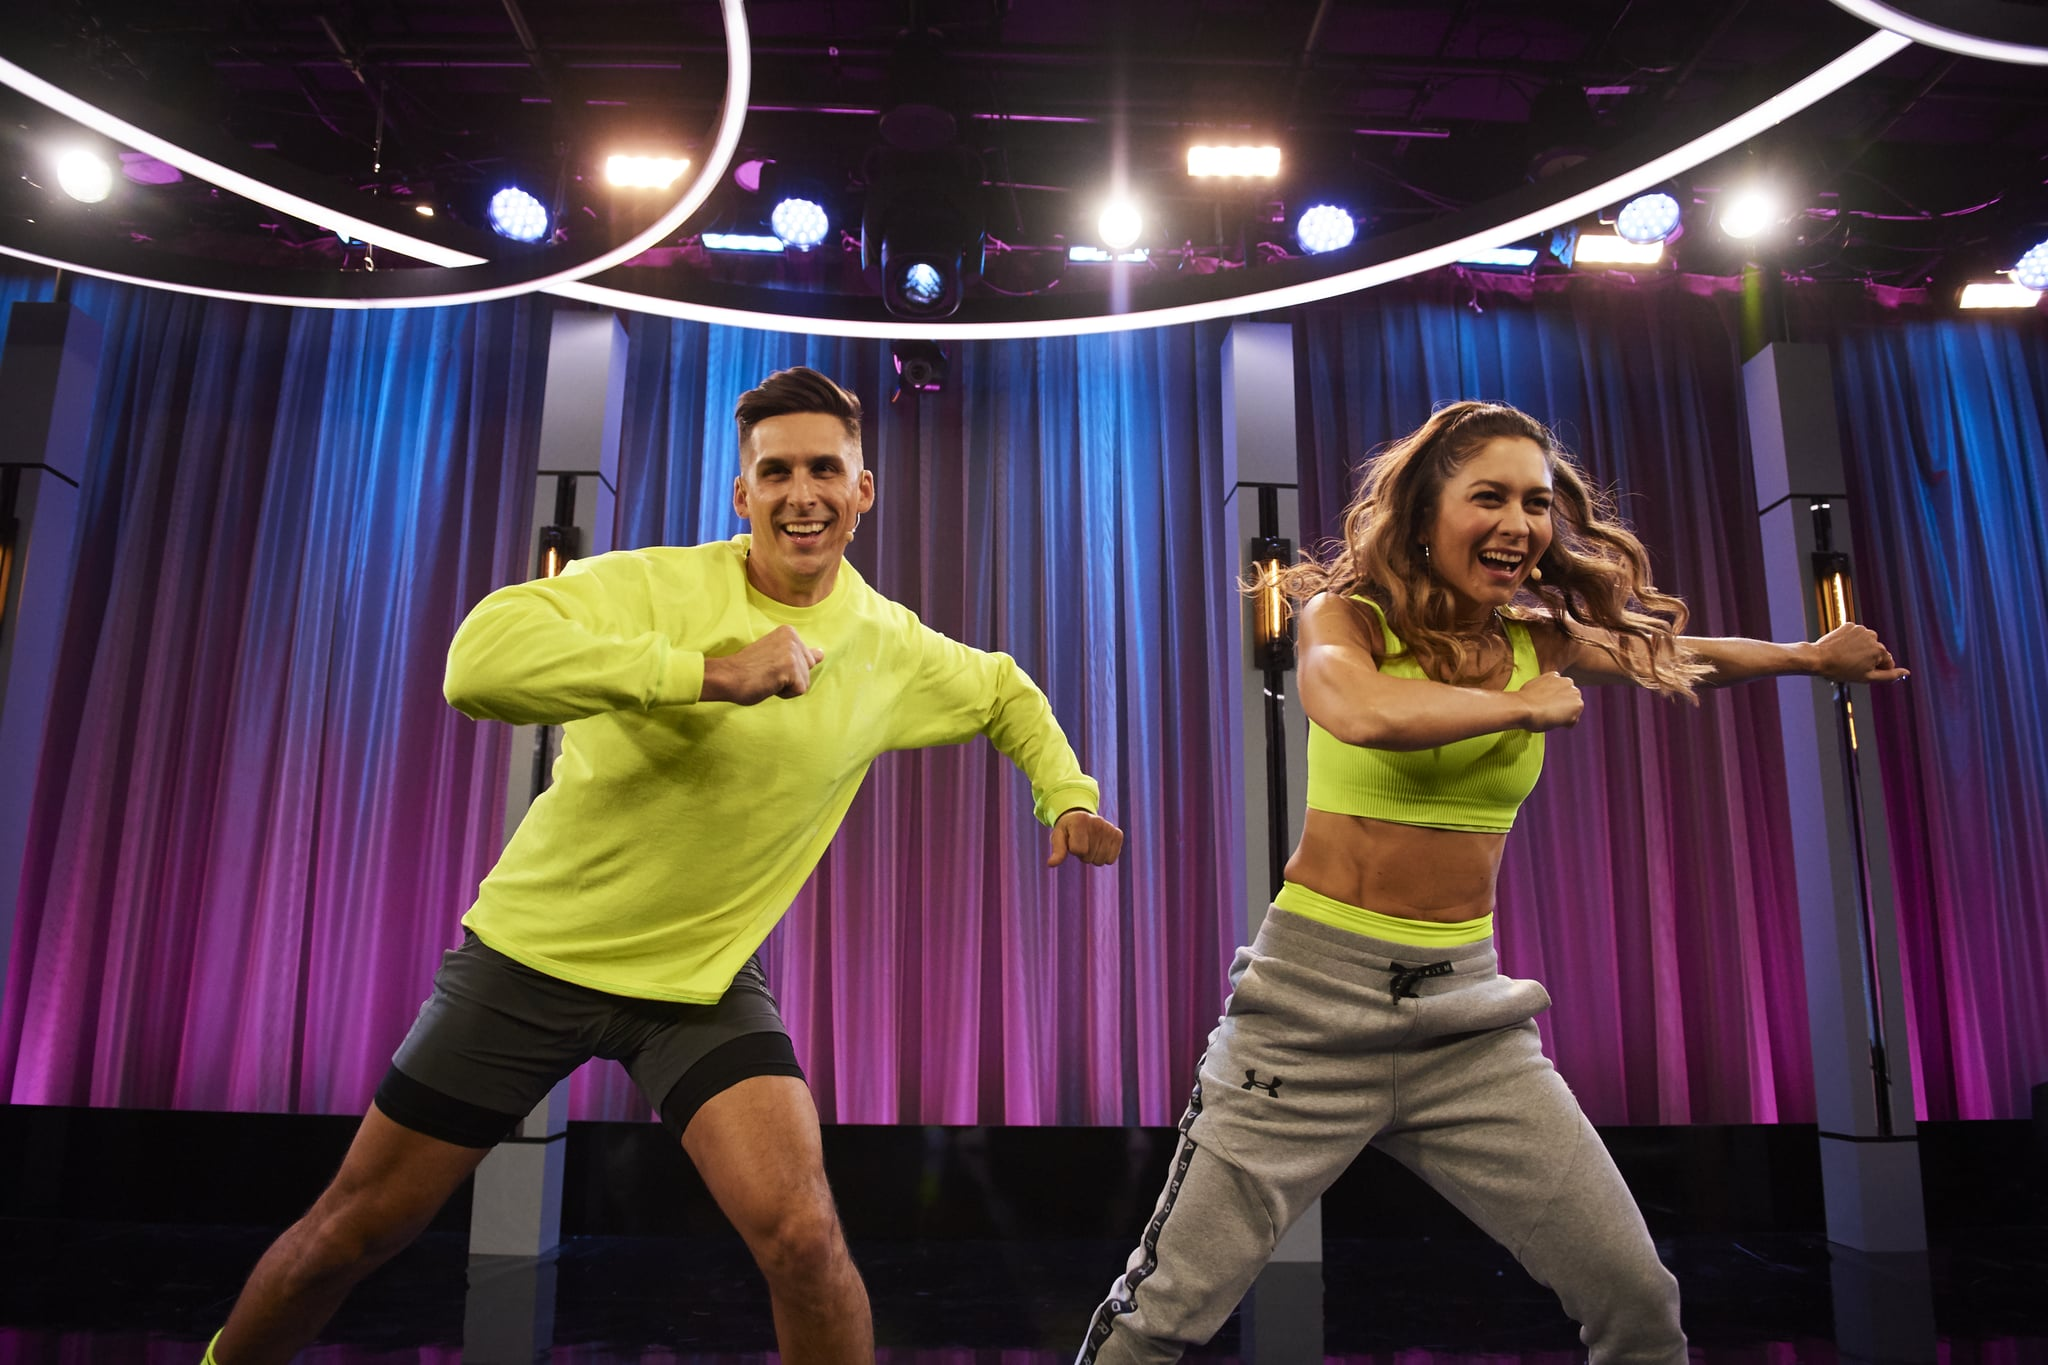 I Have a Blast With Peloton's New Dance Cardio Workouts, Even Though I Have No Rhythm